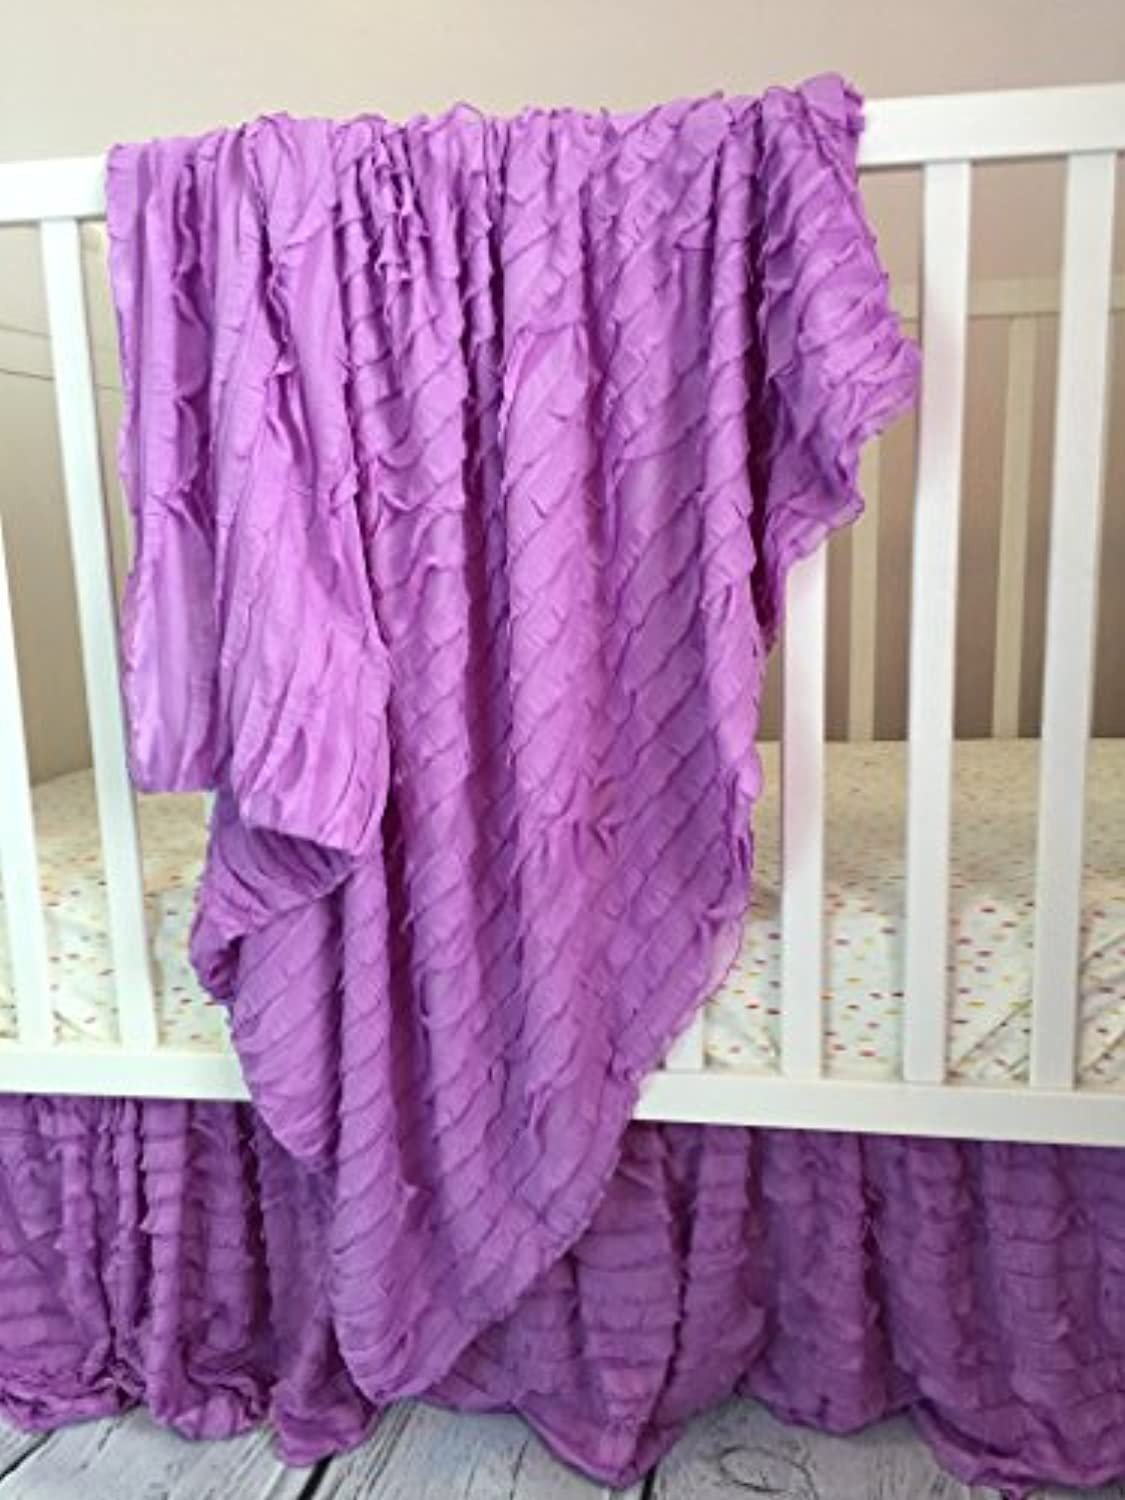 Ruffle Baby Blanket for Baby Girl 43 Lilac Purple - Great Swaddling, Crib, and Receiving Blanket by A Vision to Remember